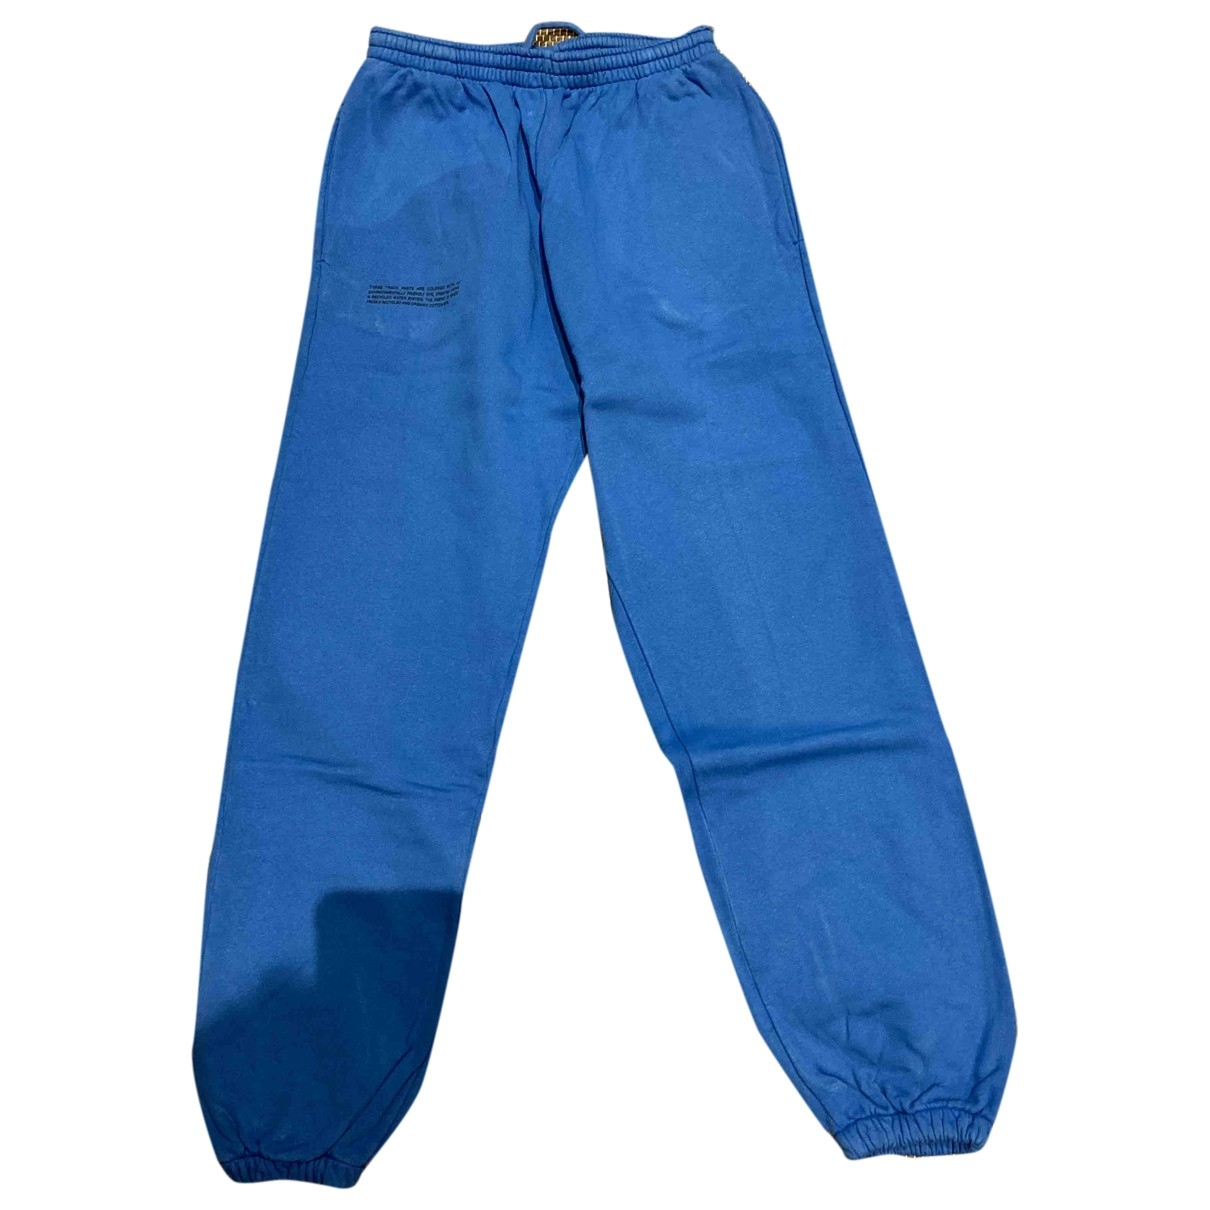 The Pangaia \N Blue Cotton Trousers for Women S International